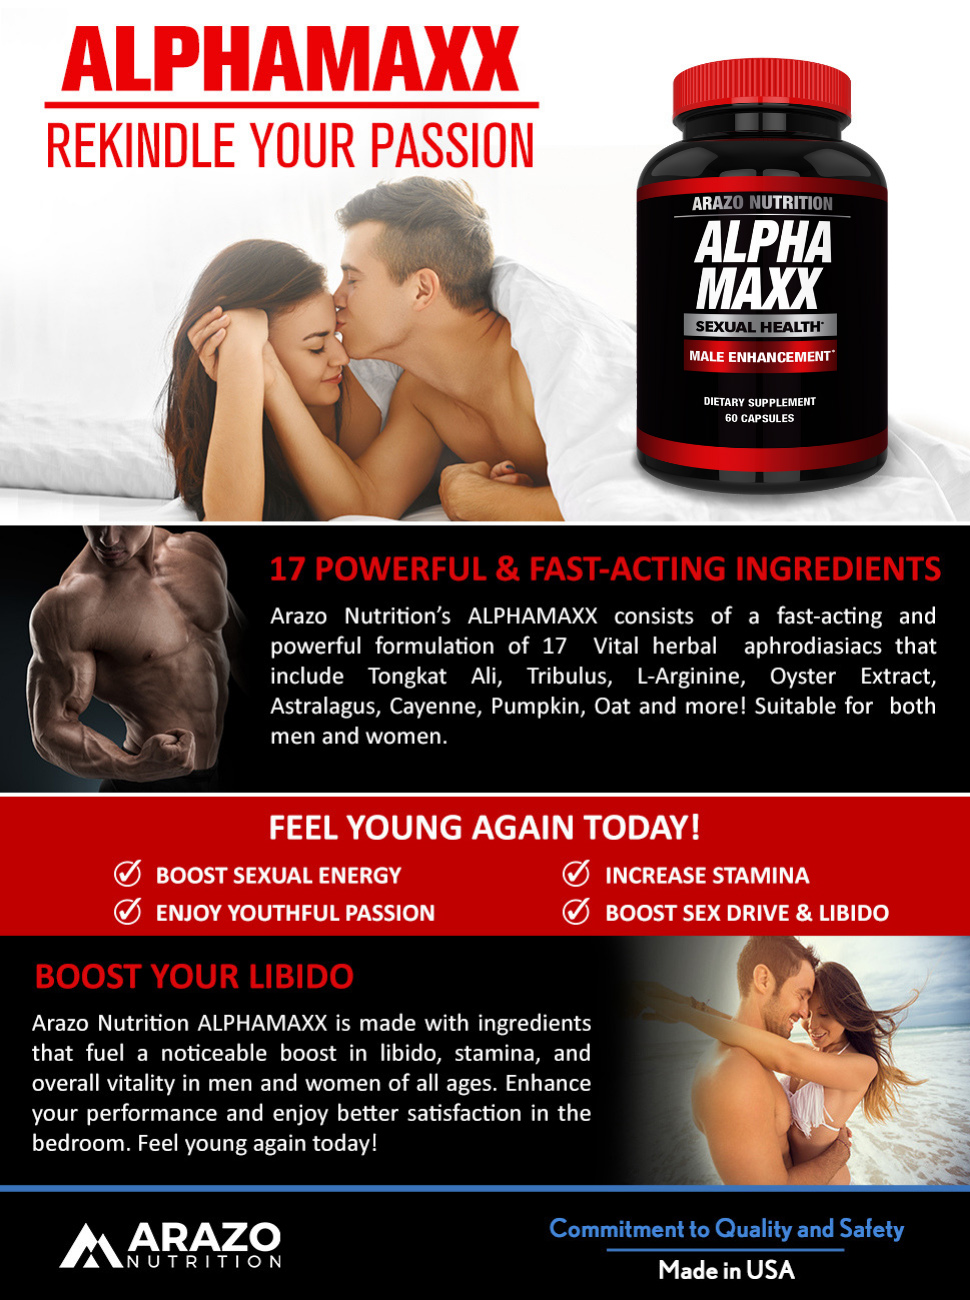 AlphaMAXX Male Enhancement Supplement